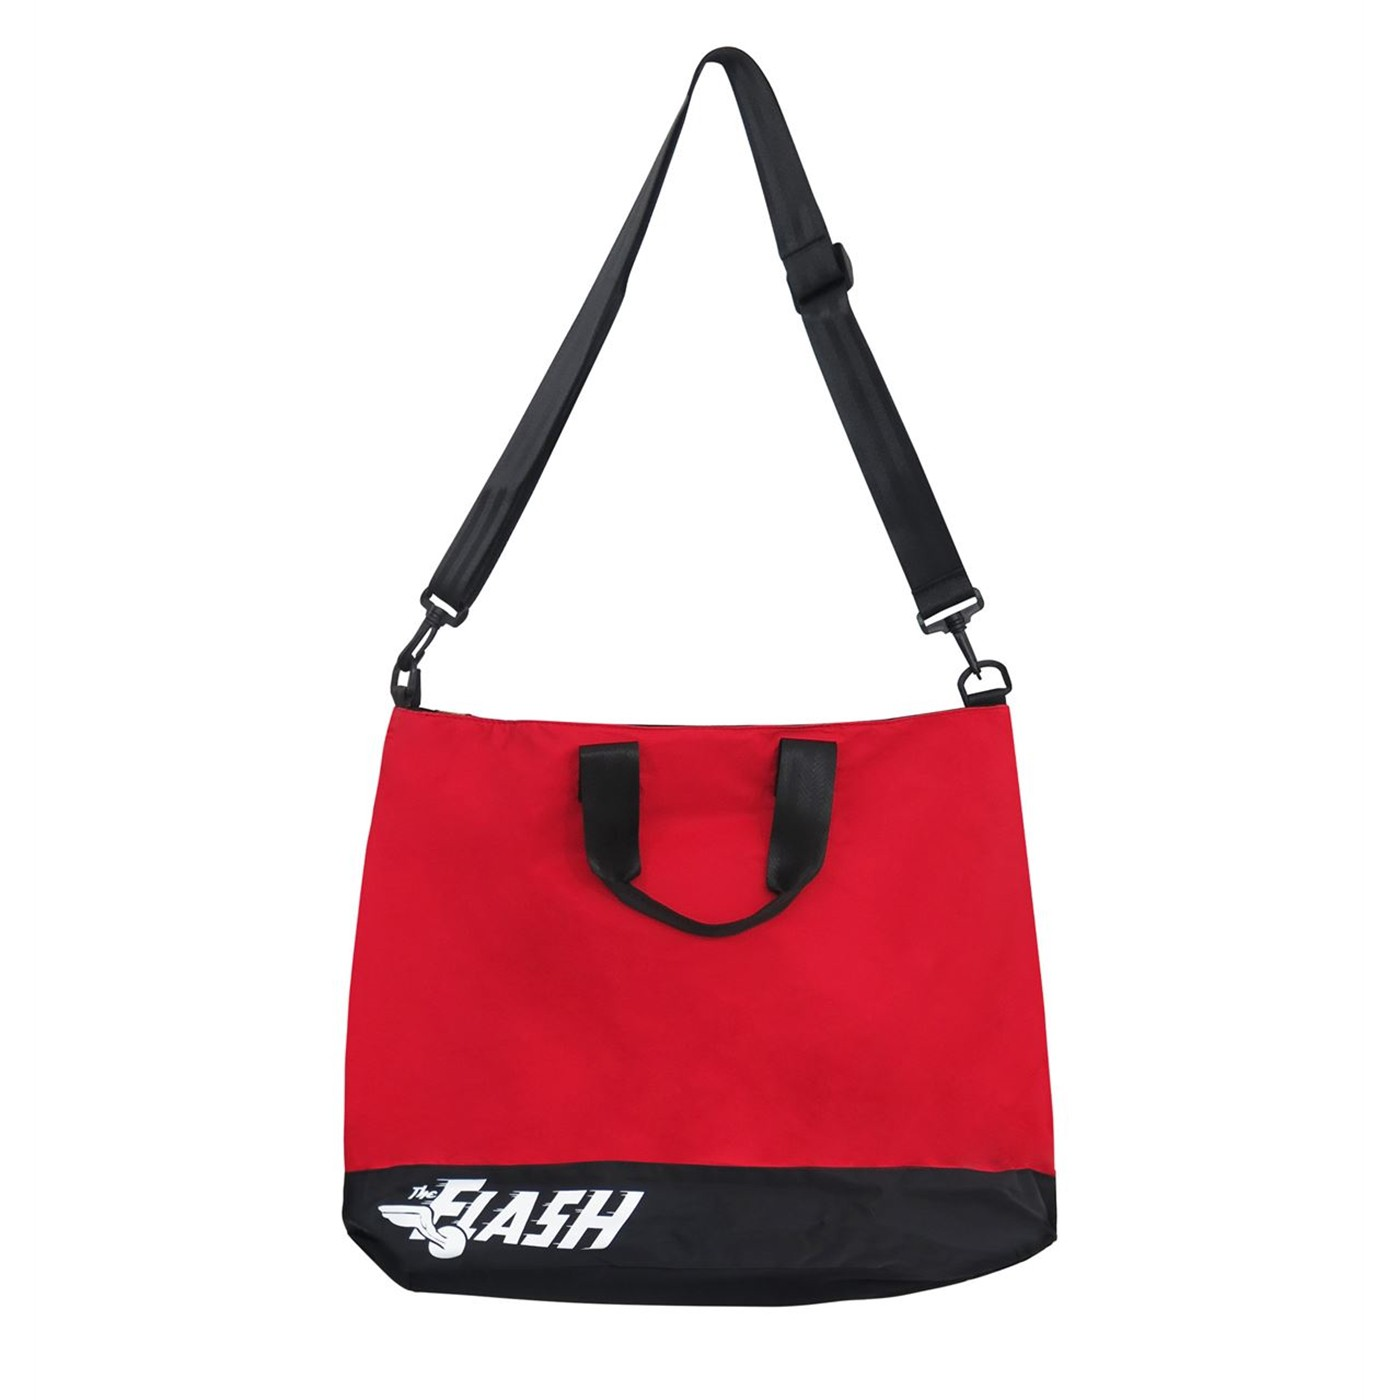 The Flash Women's Oversized Tote Bag